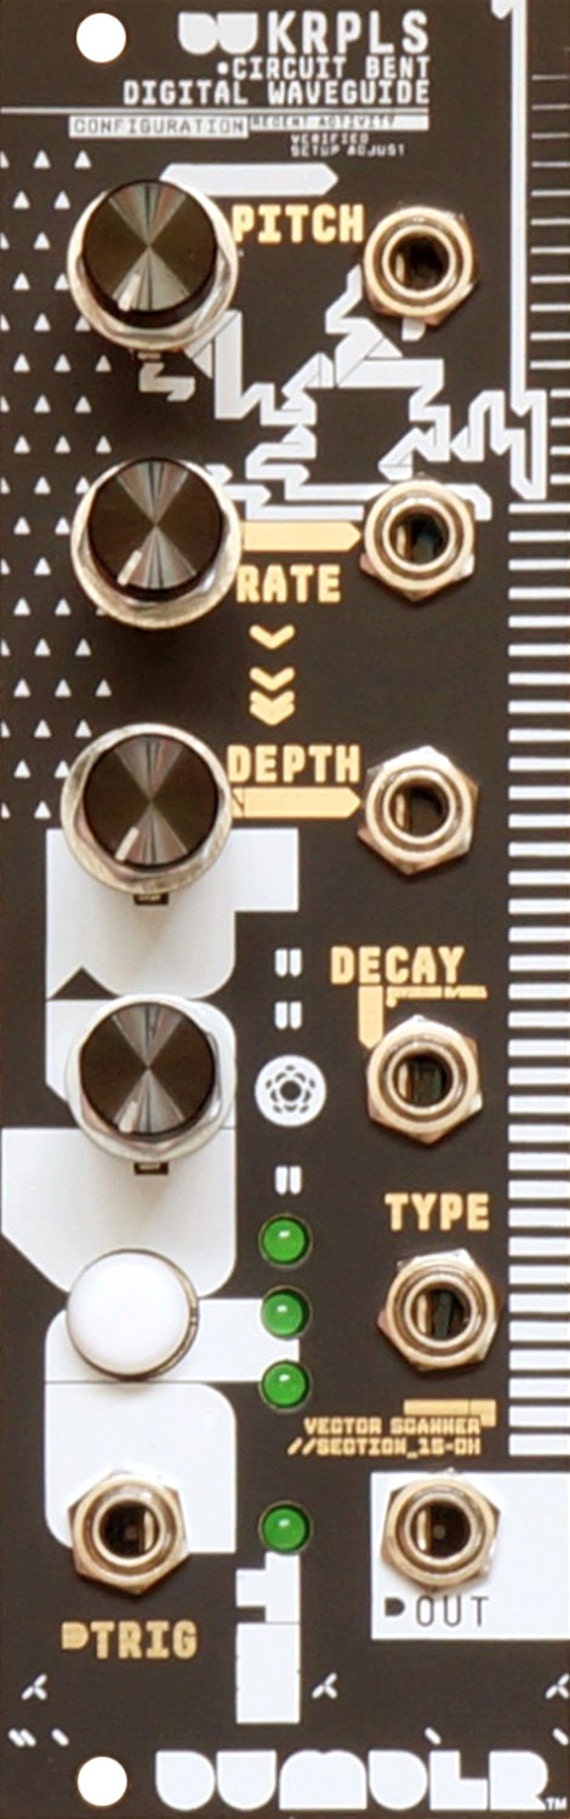 New Modular Gear Purchase Thread - Page 2 - Gearslutz